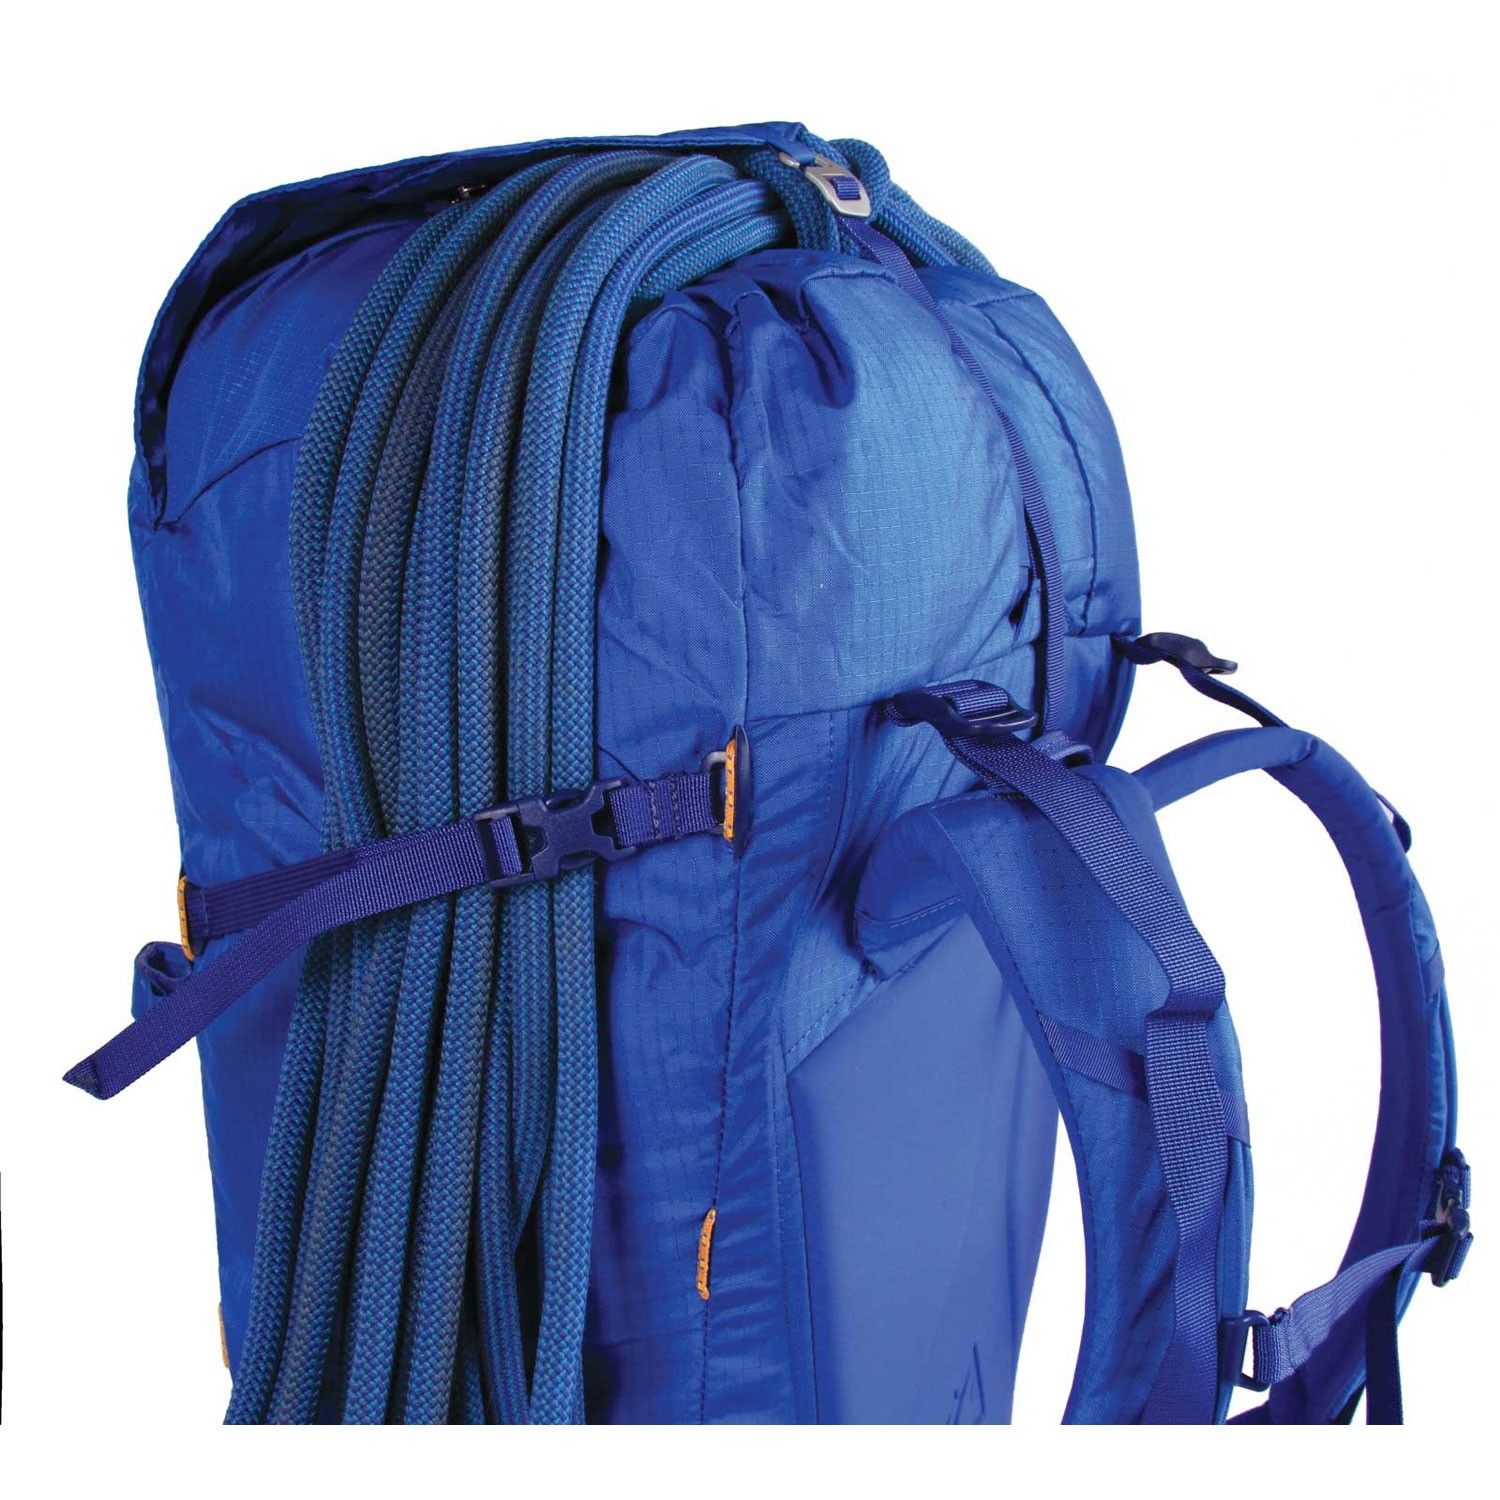 Blue Ice Warthog 45L Rucksack - Turkish Blue - rope holder side